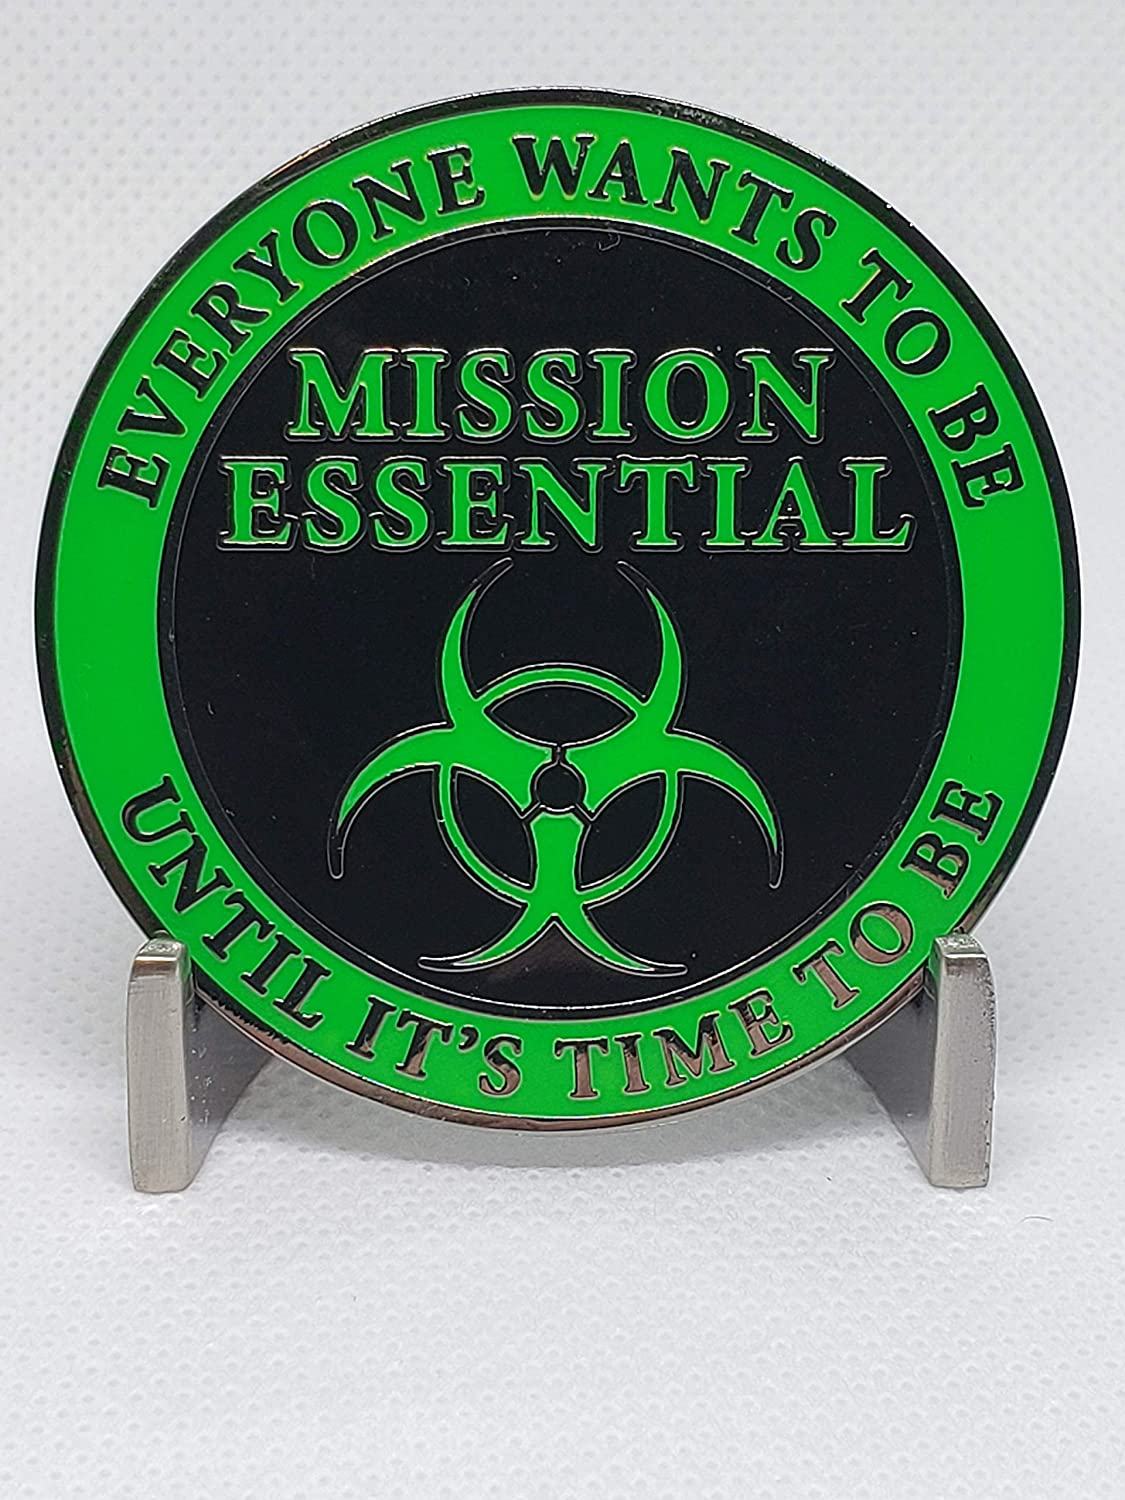 Mission Essential Worker Cluster coronavirus covid-19 Operation Enduring Clusterfuck Glowing Challenge Coin